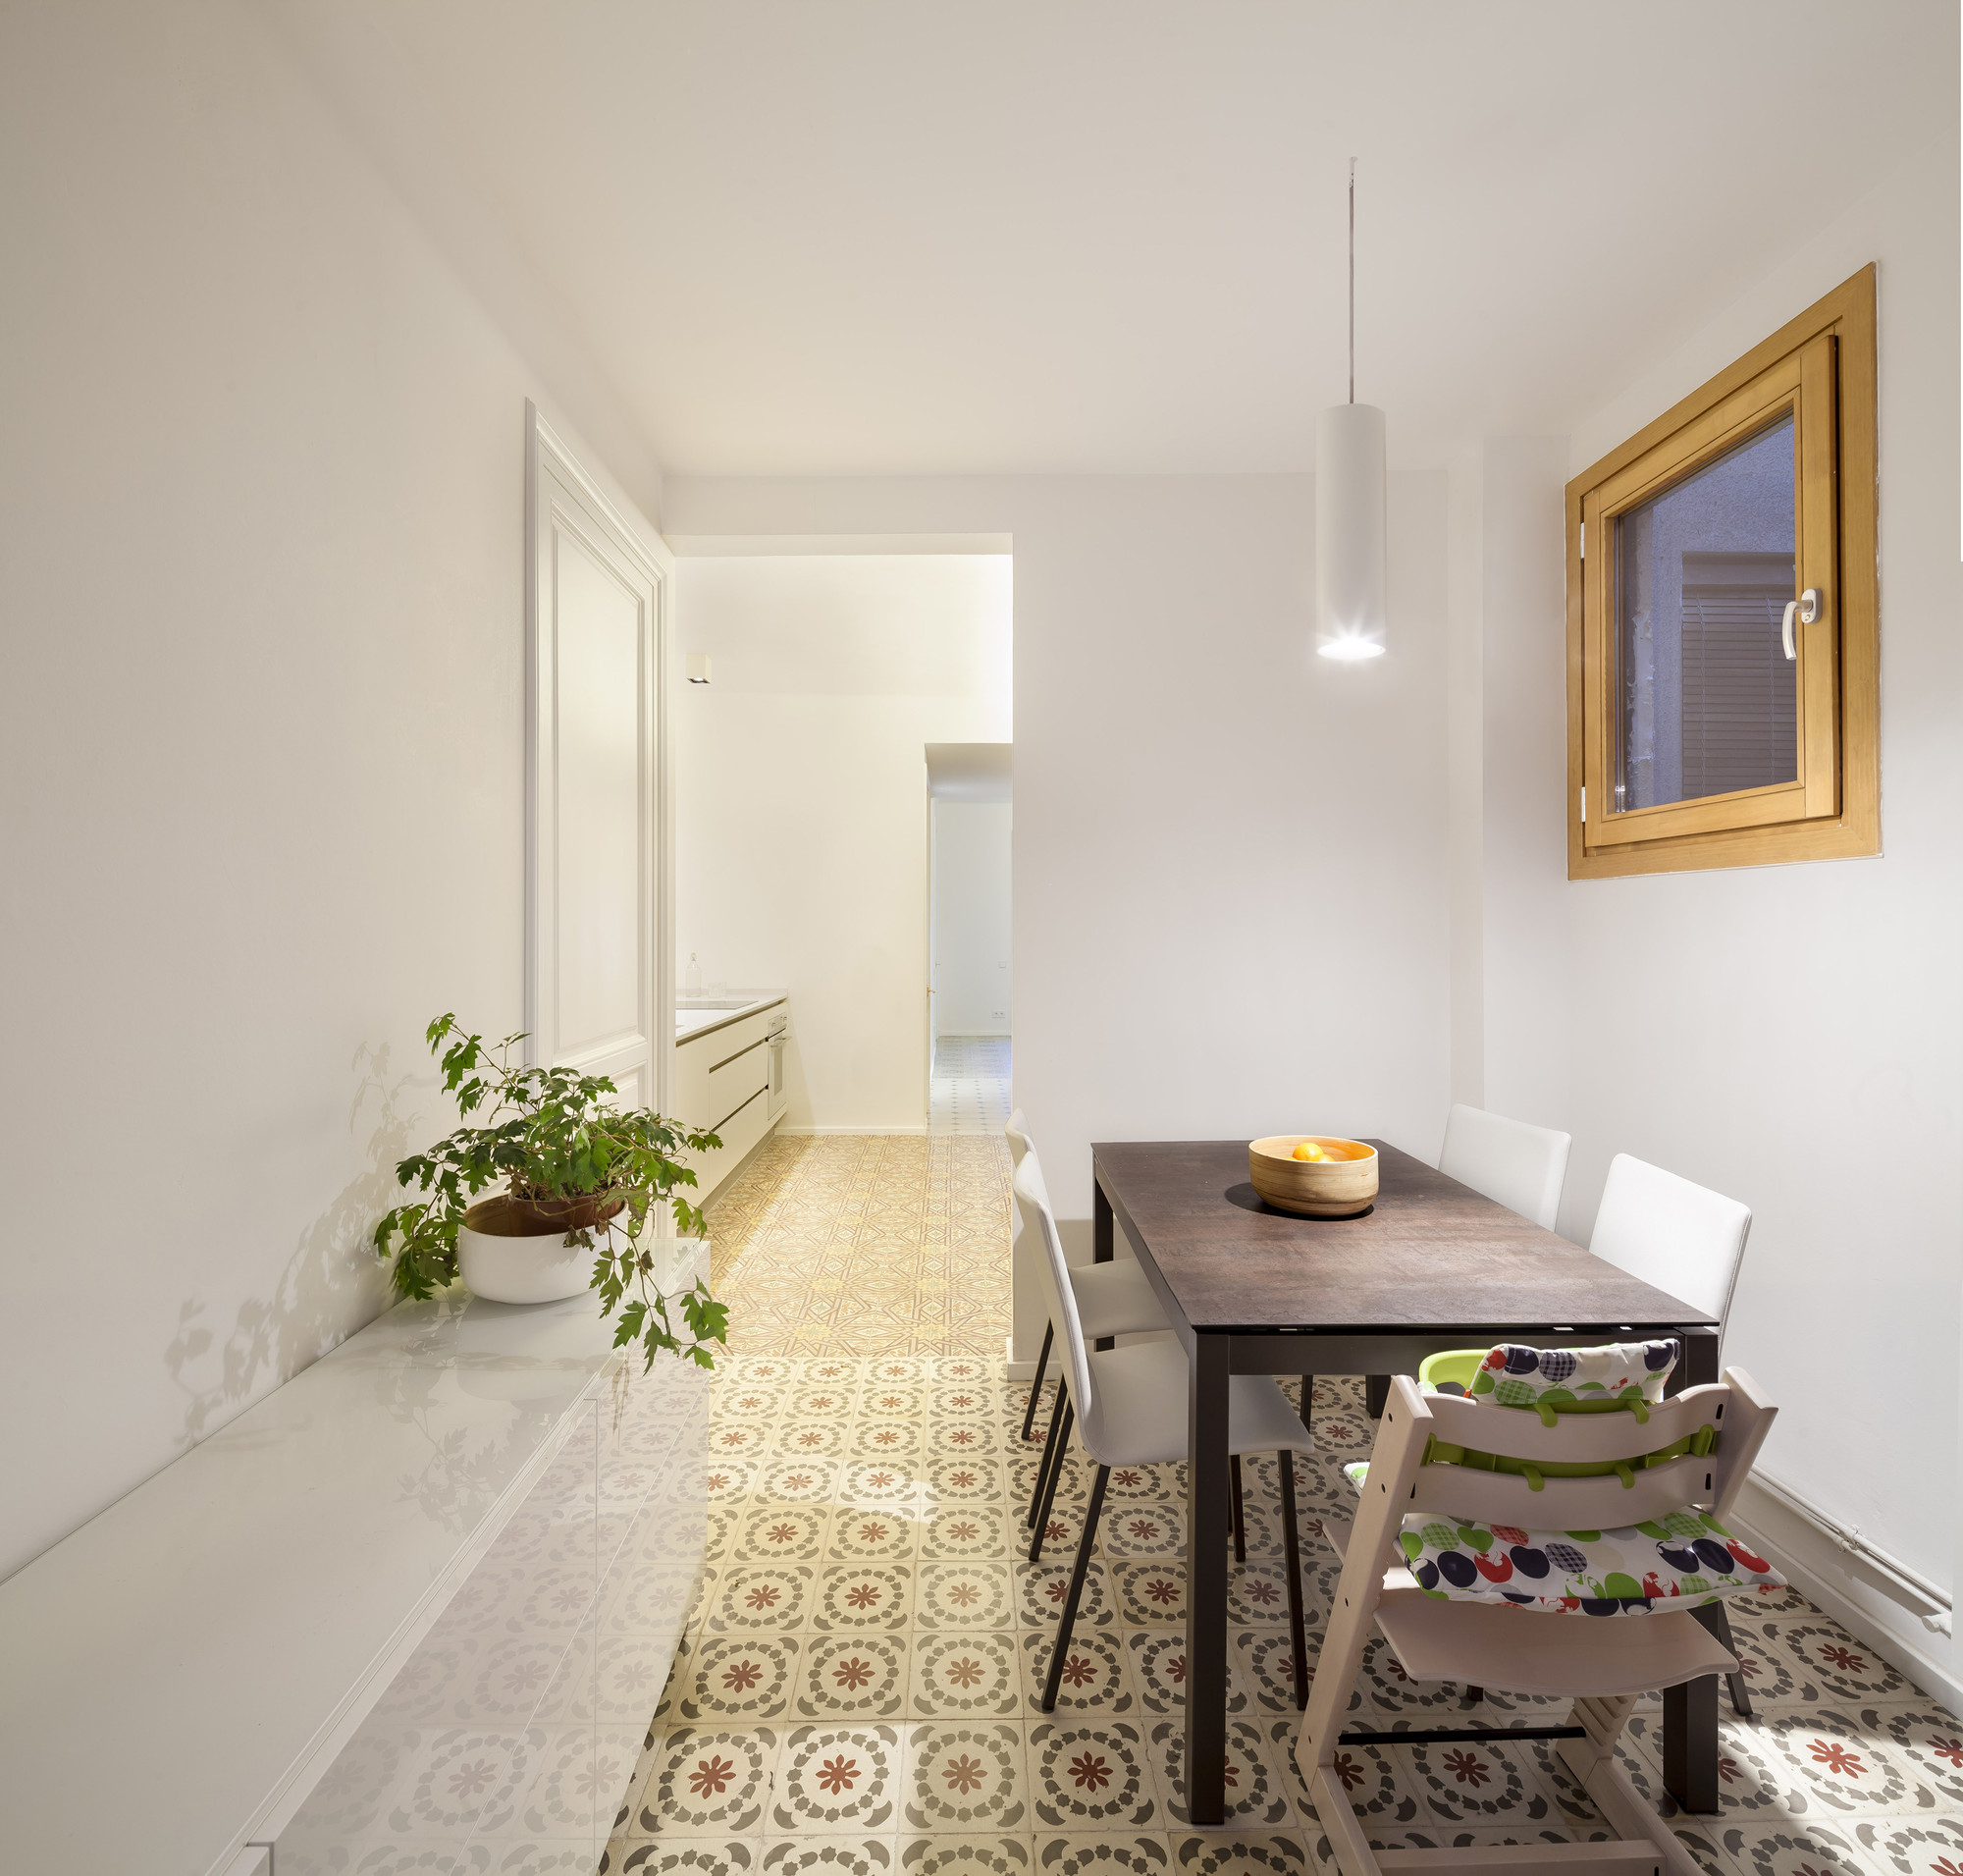 Apartment Refurbishment in Barcelona / Alventosa Morell Arquitectes , © Adrià Goula